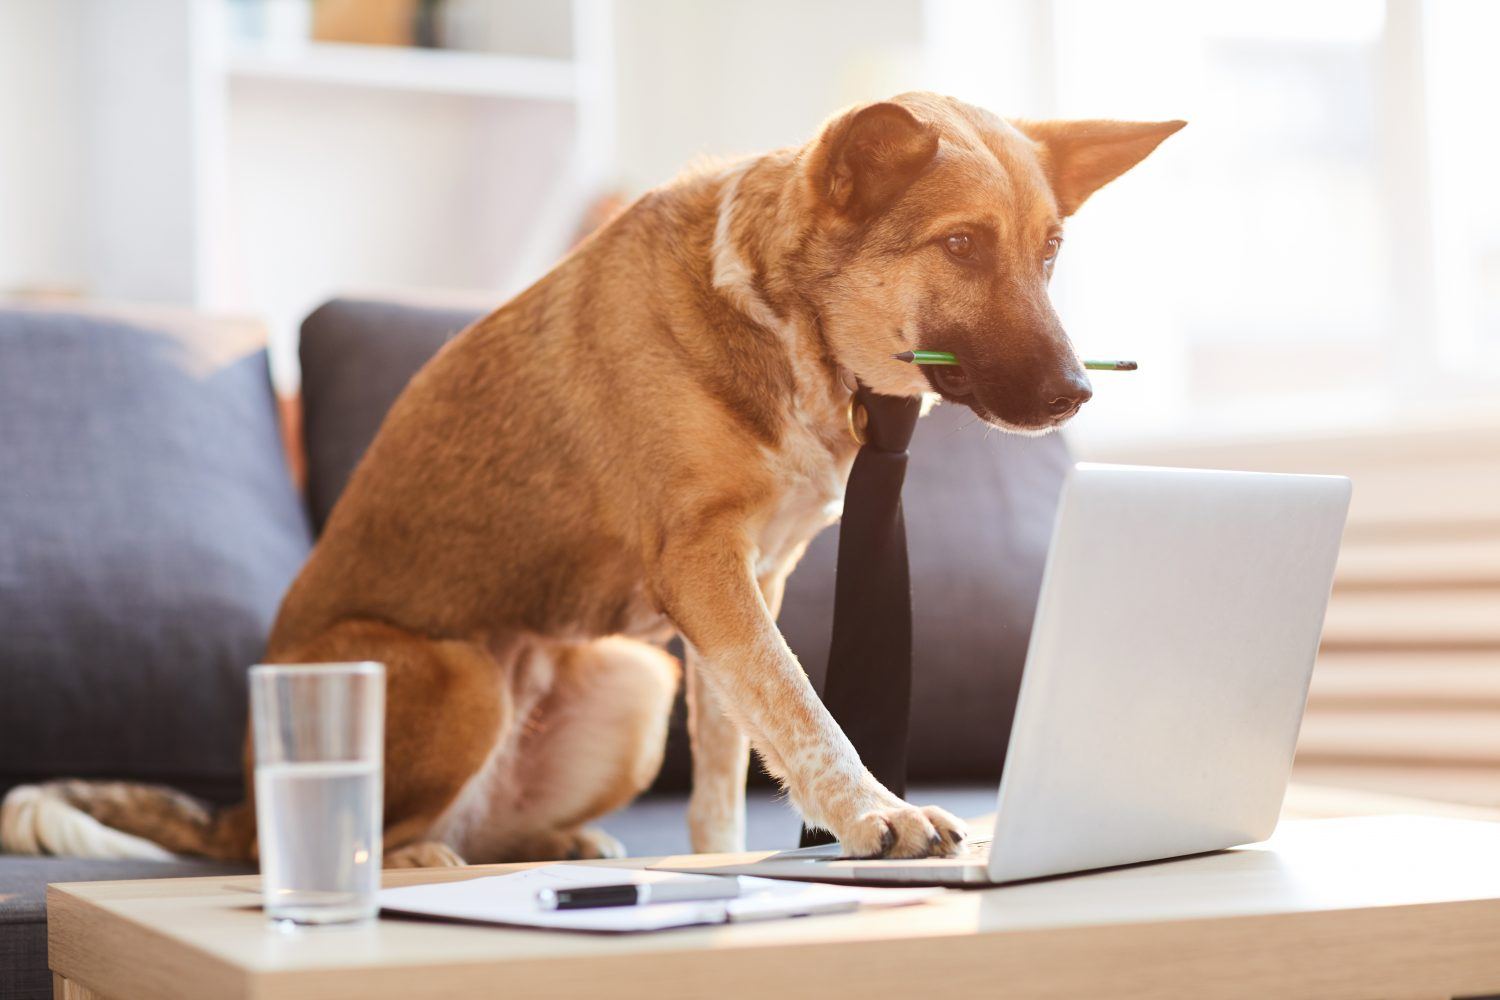 Dog wearing a tie working on a computer